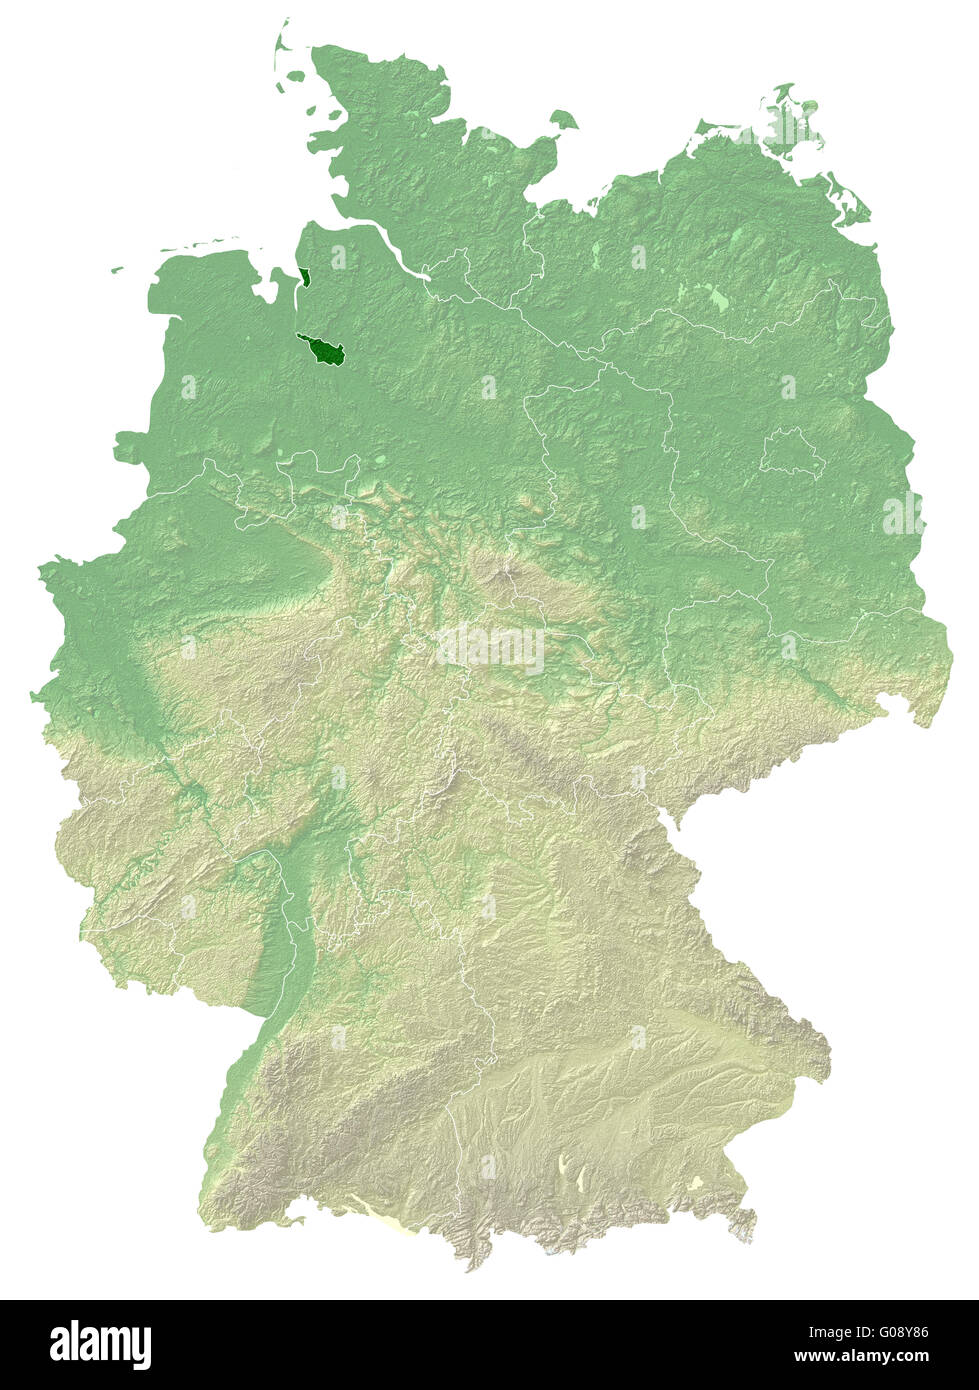 Bremen - topographical relief map Germany - Stock Image